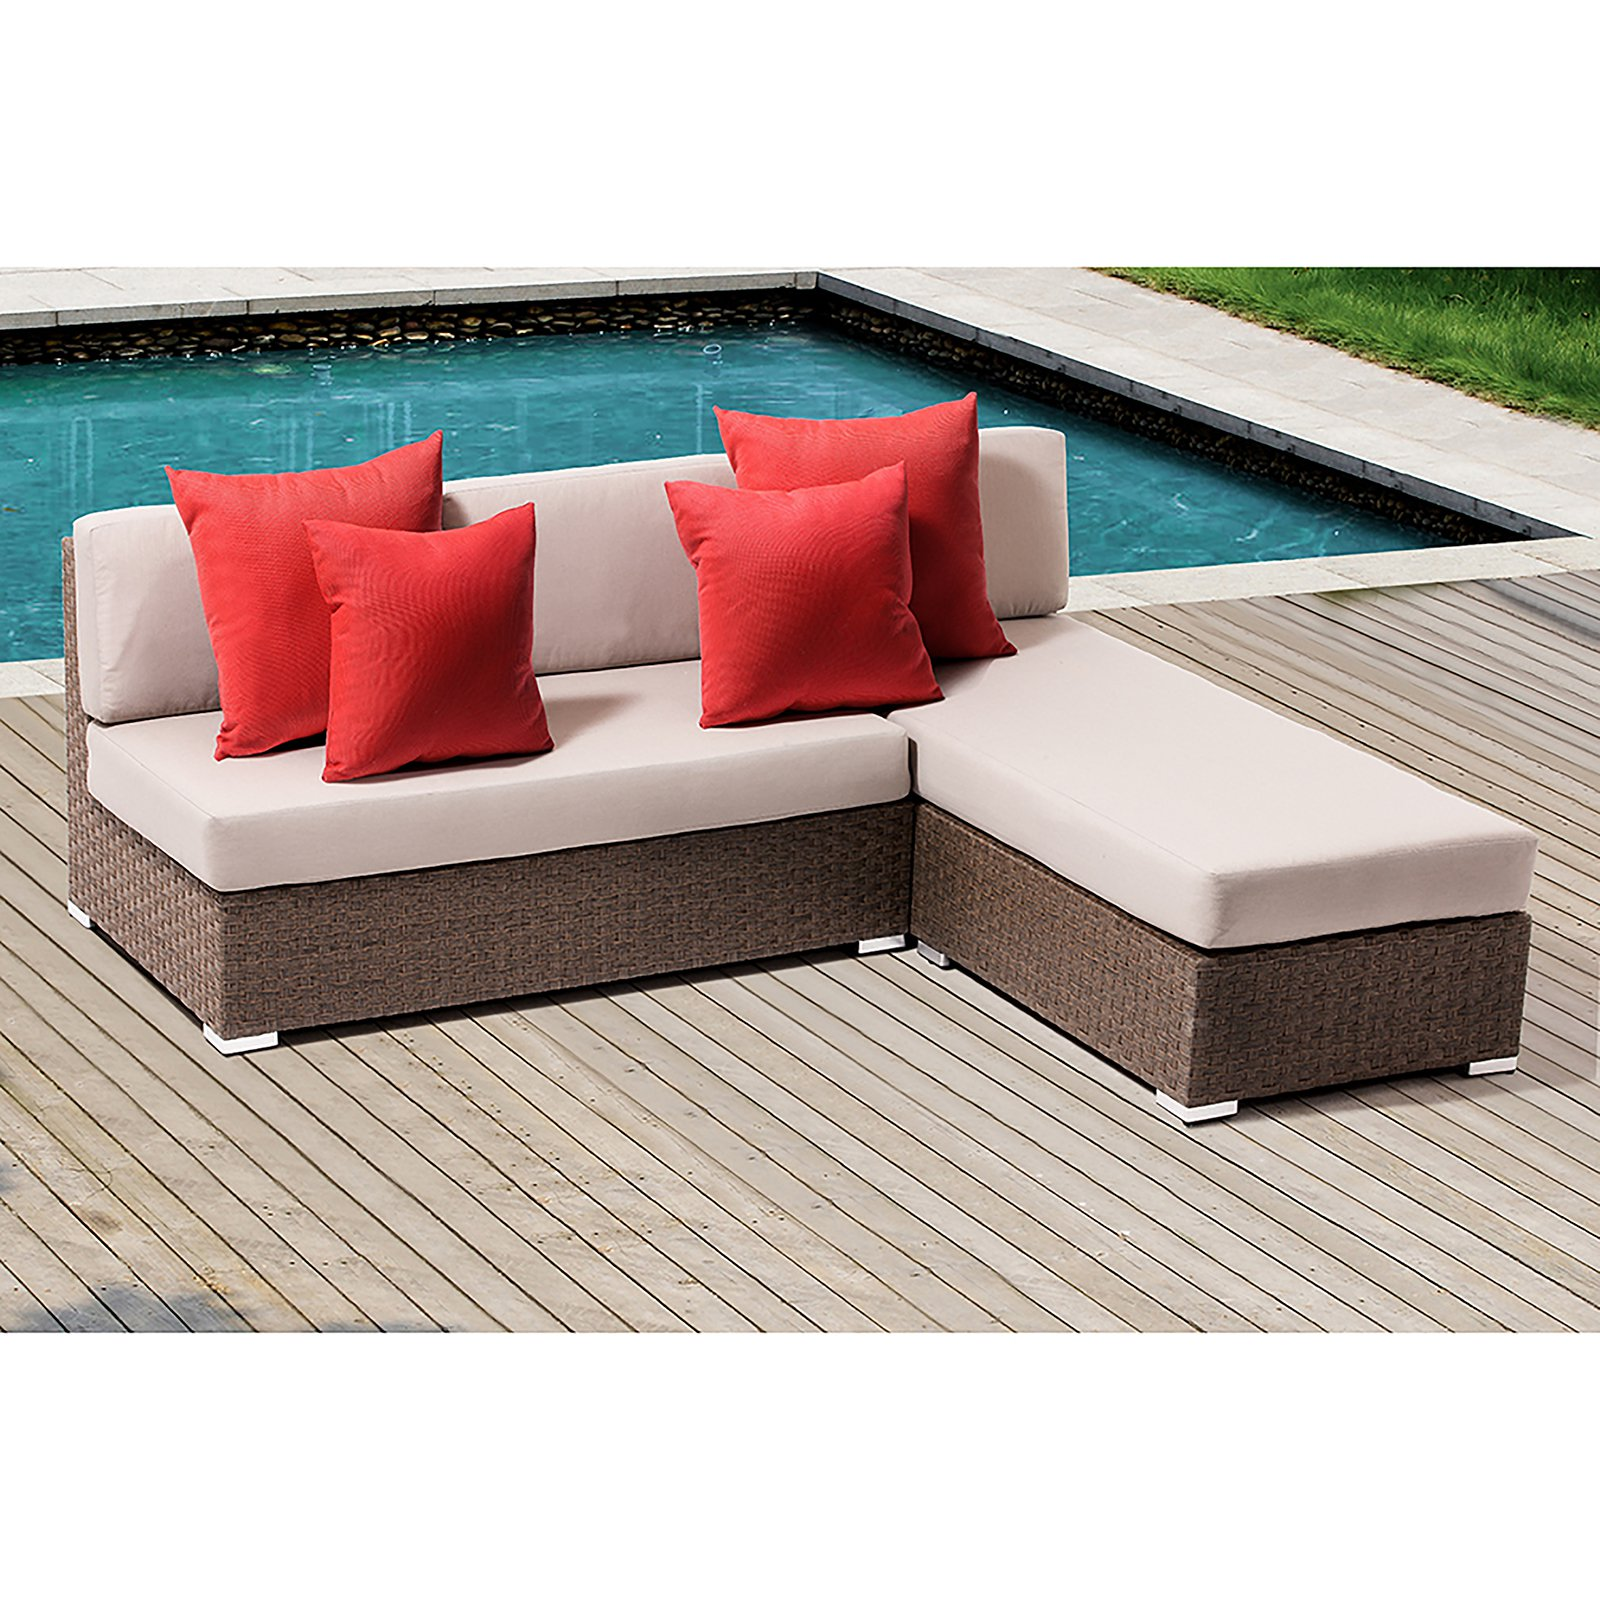 OVE Decors Leads Wicker 2 Piece Patio Conversation Set with Cushions